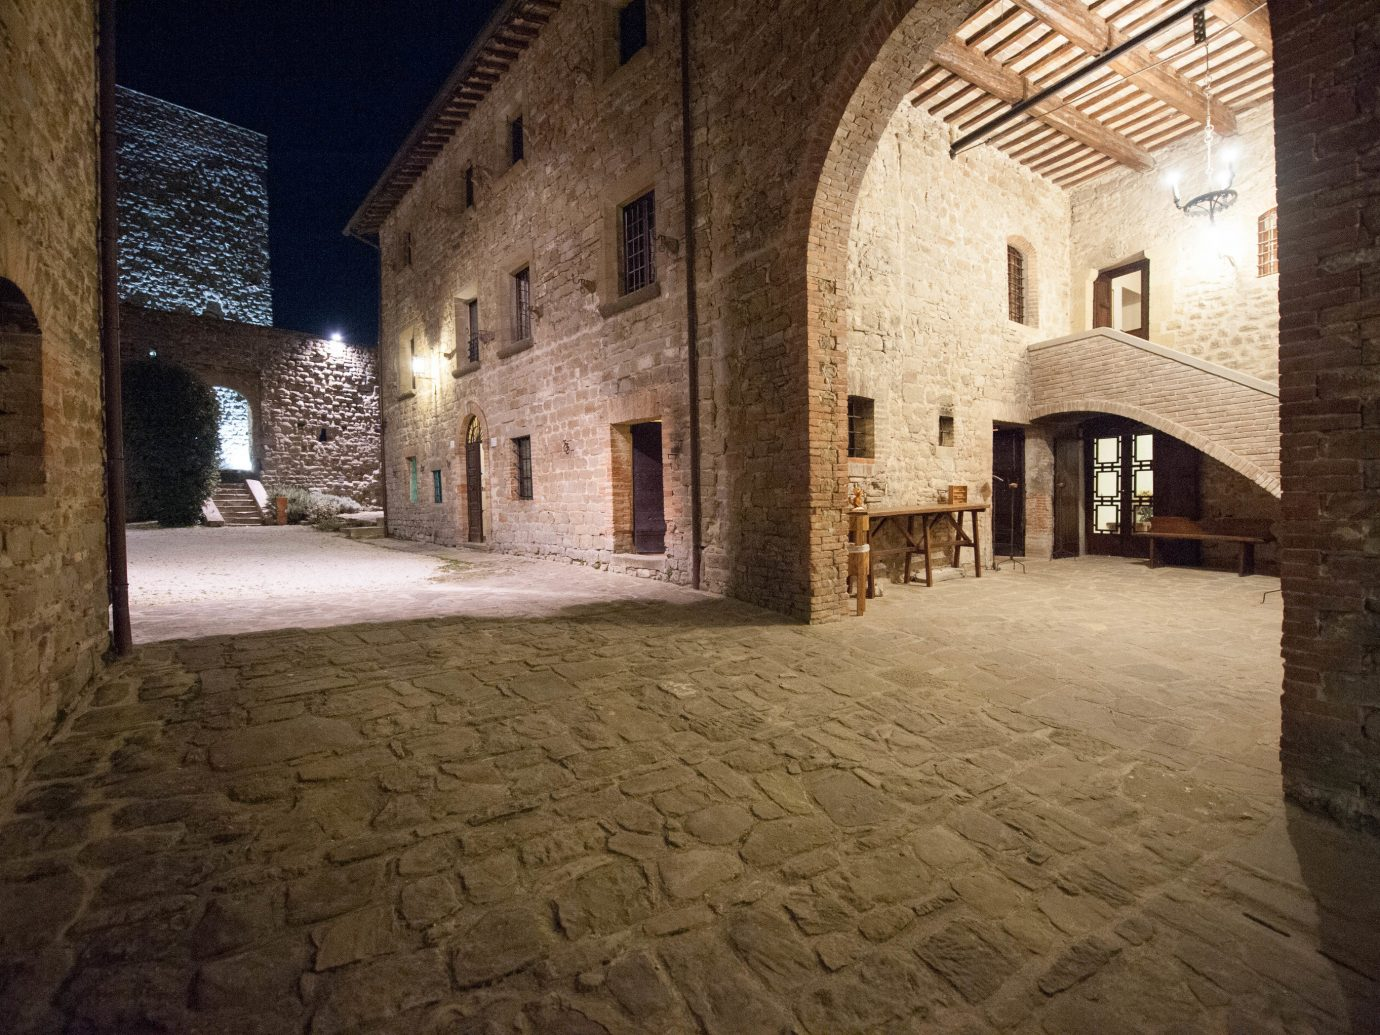 europe Hotels Italy Romance building brick stone alley wall night ancient history street estate lighting Courtyard walkway arch